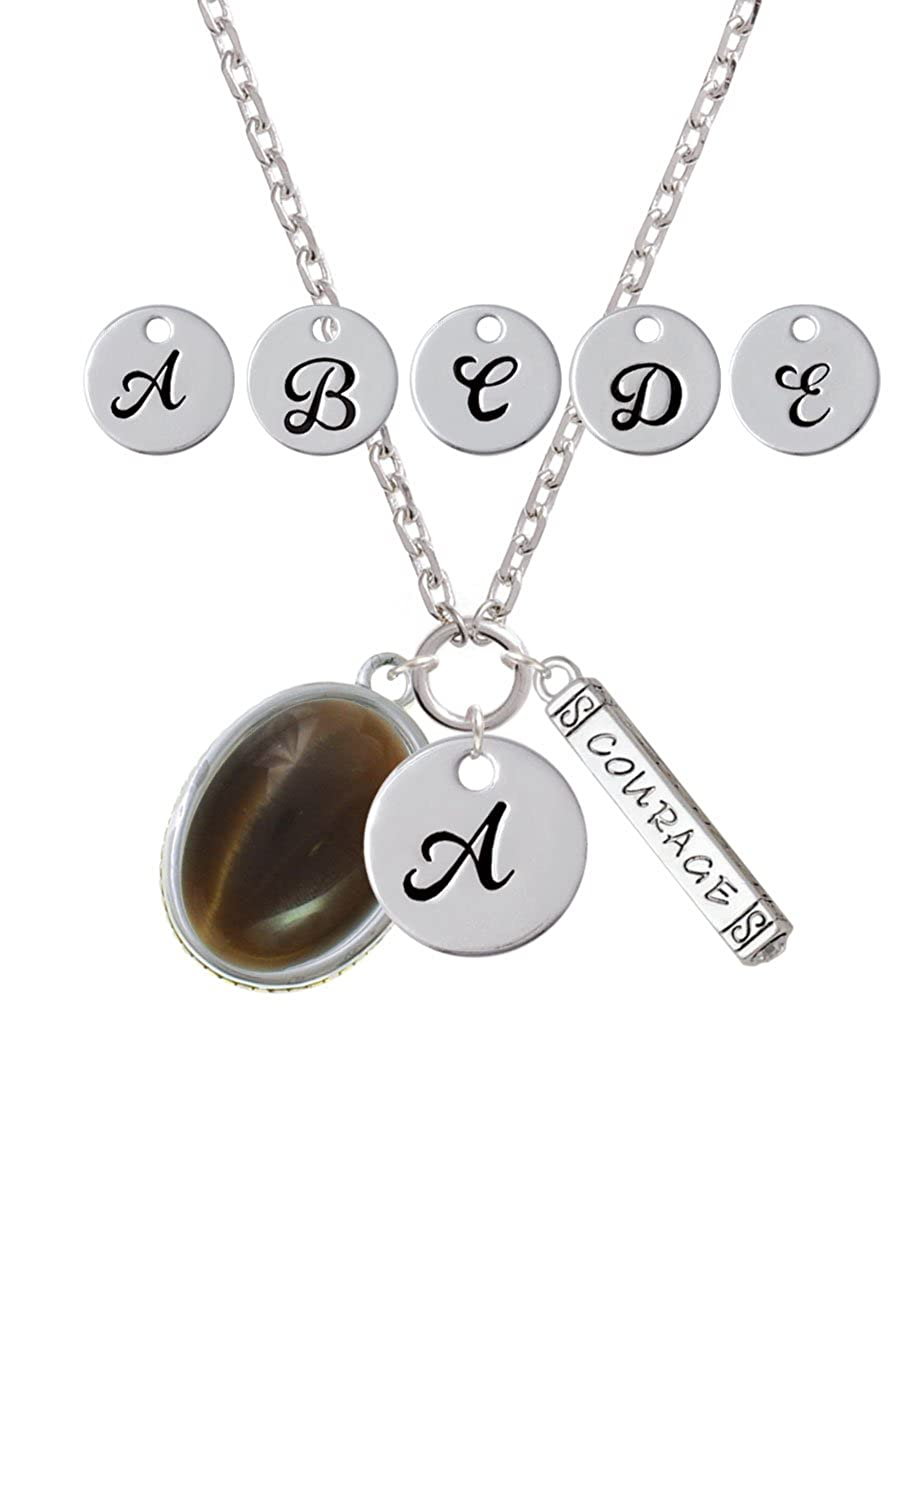 Custom Initial Courage Strength Zoe Necklace Oval Imitation Cats Eye Brown